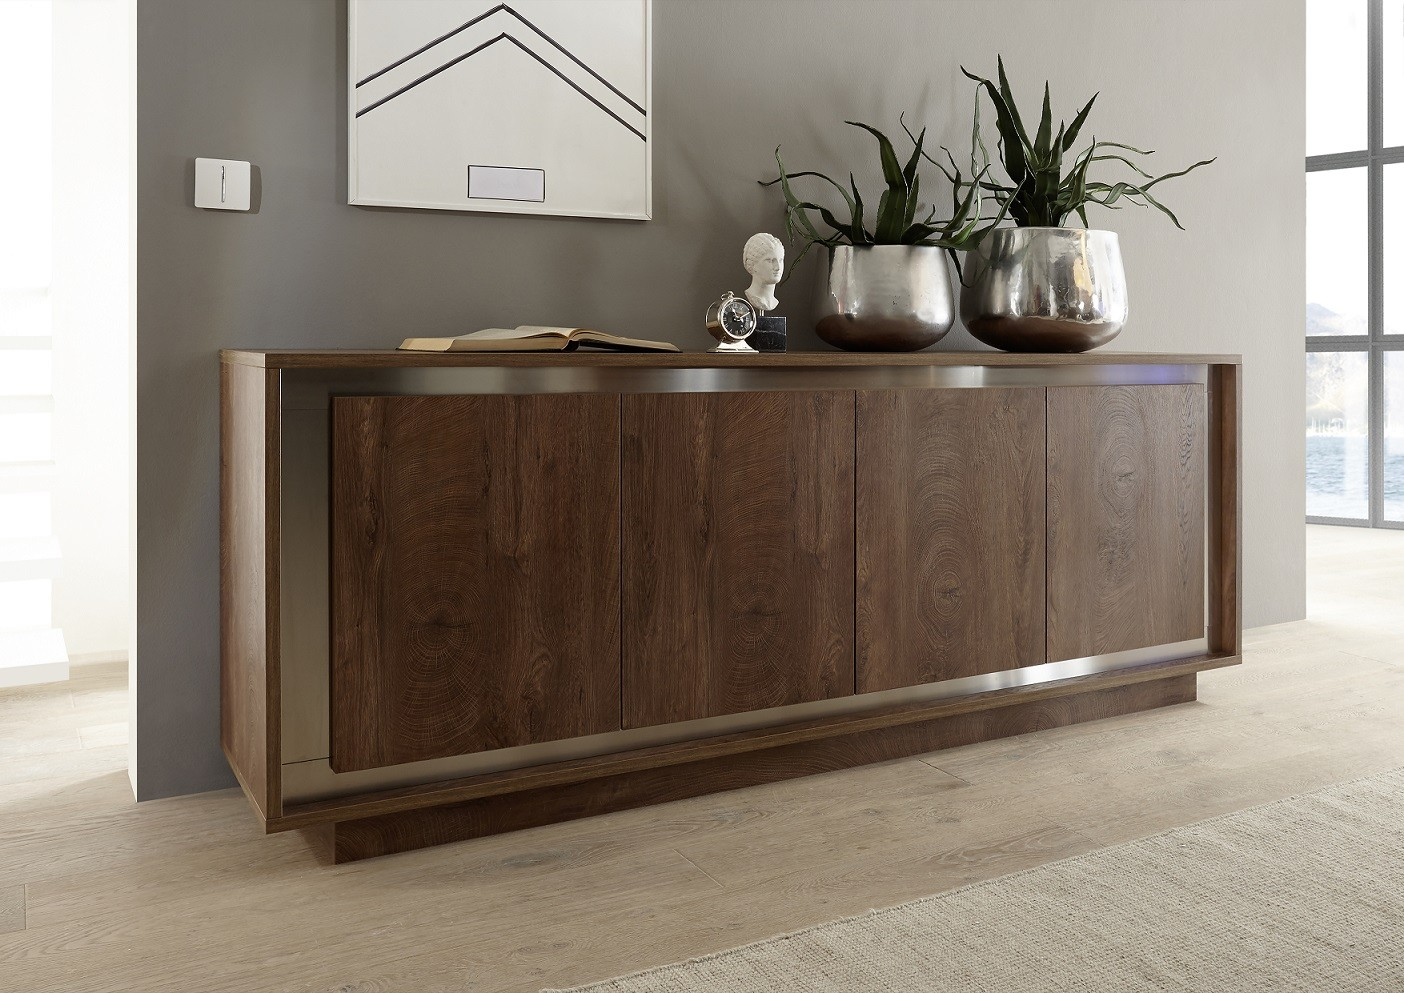 Efurniture sideboard